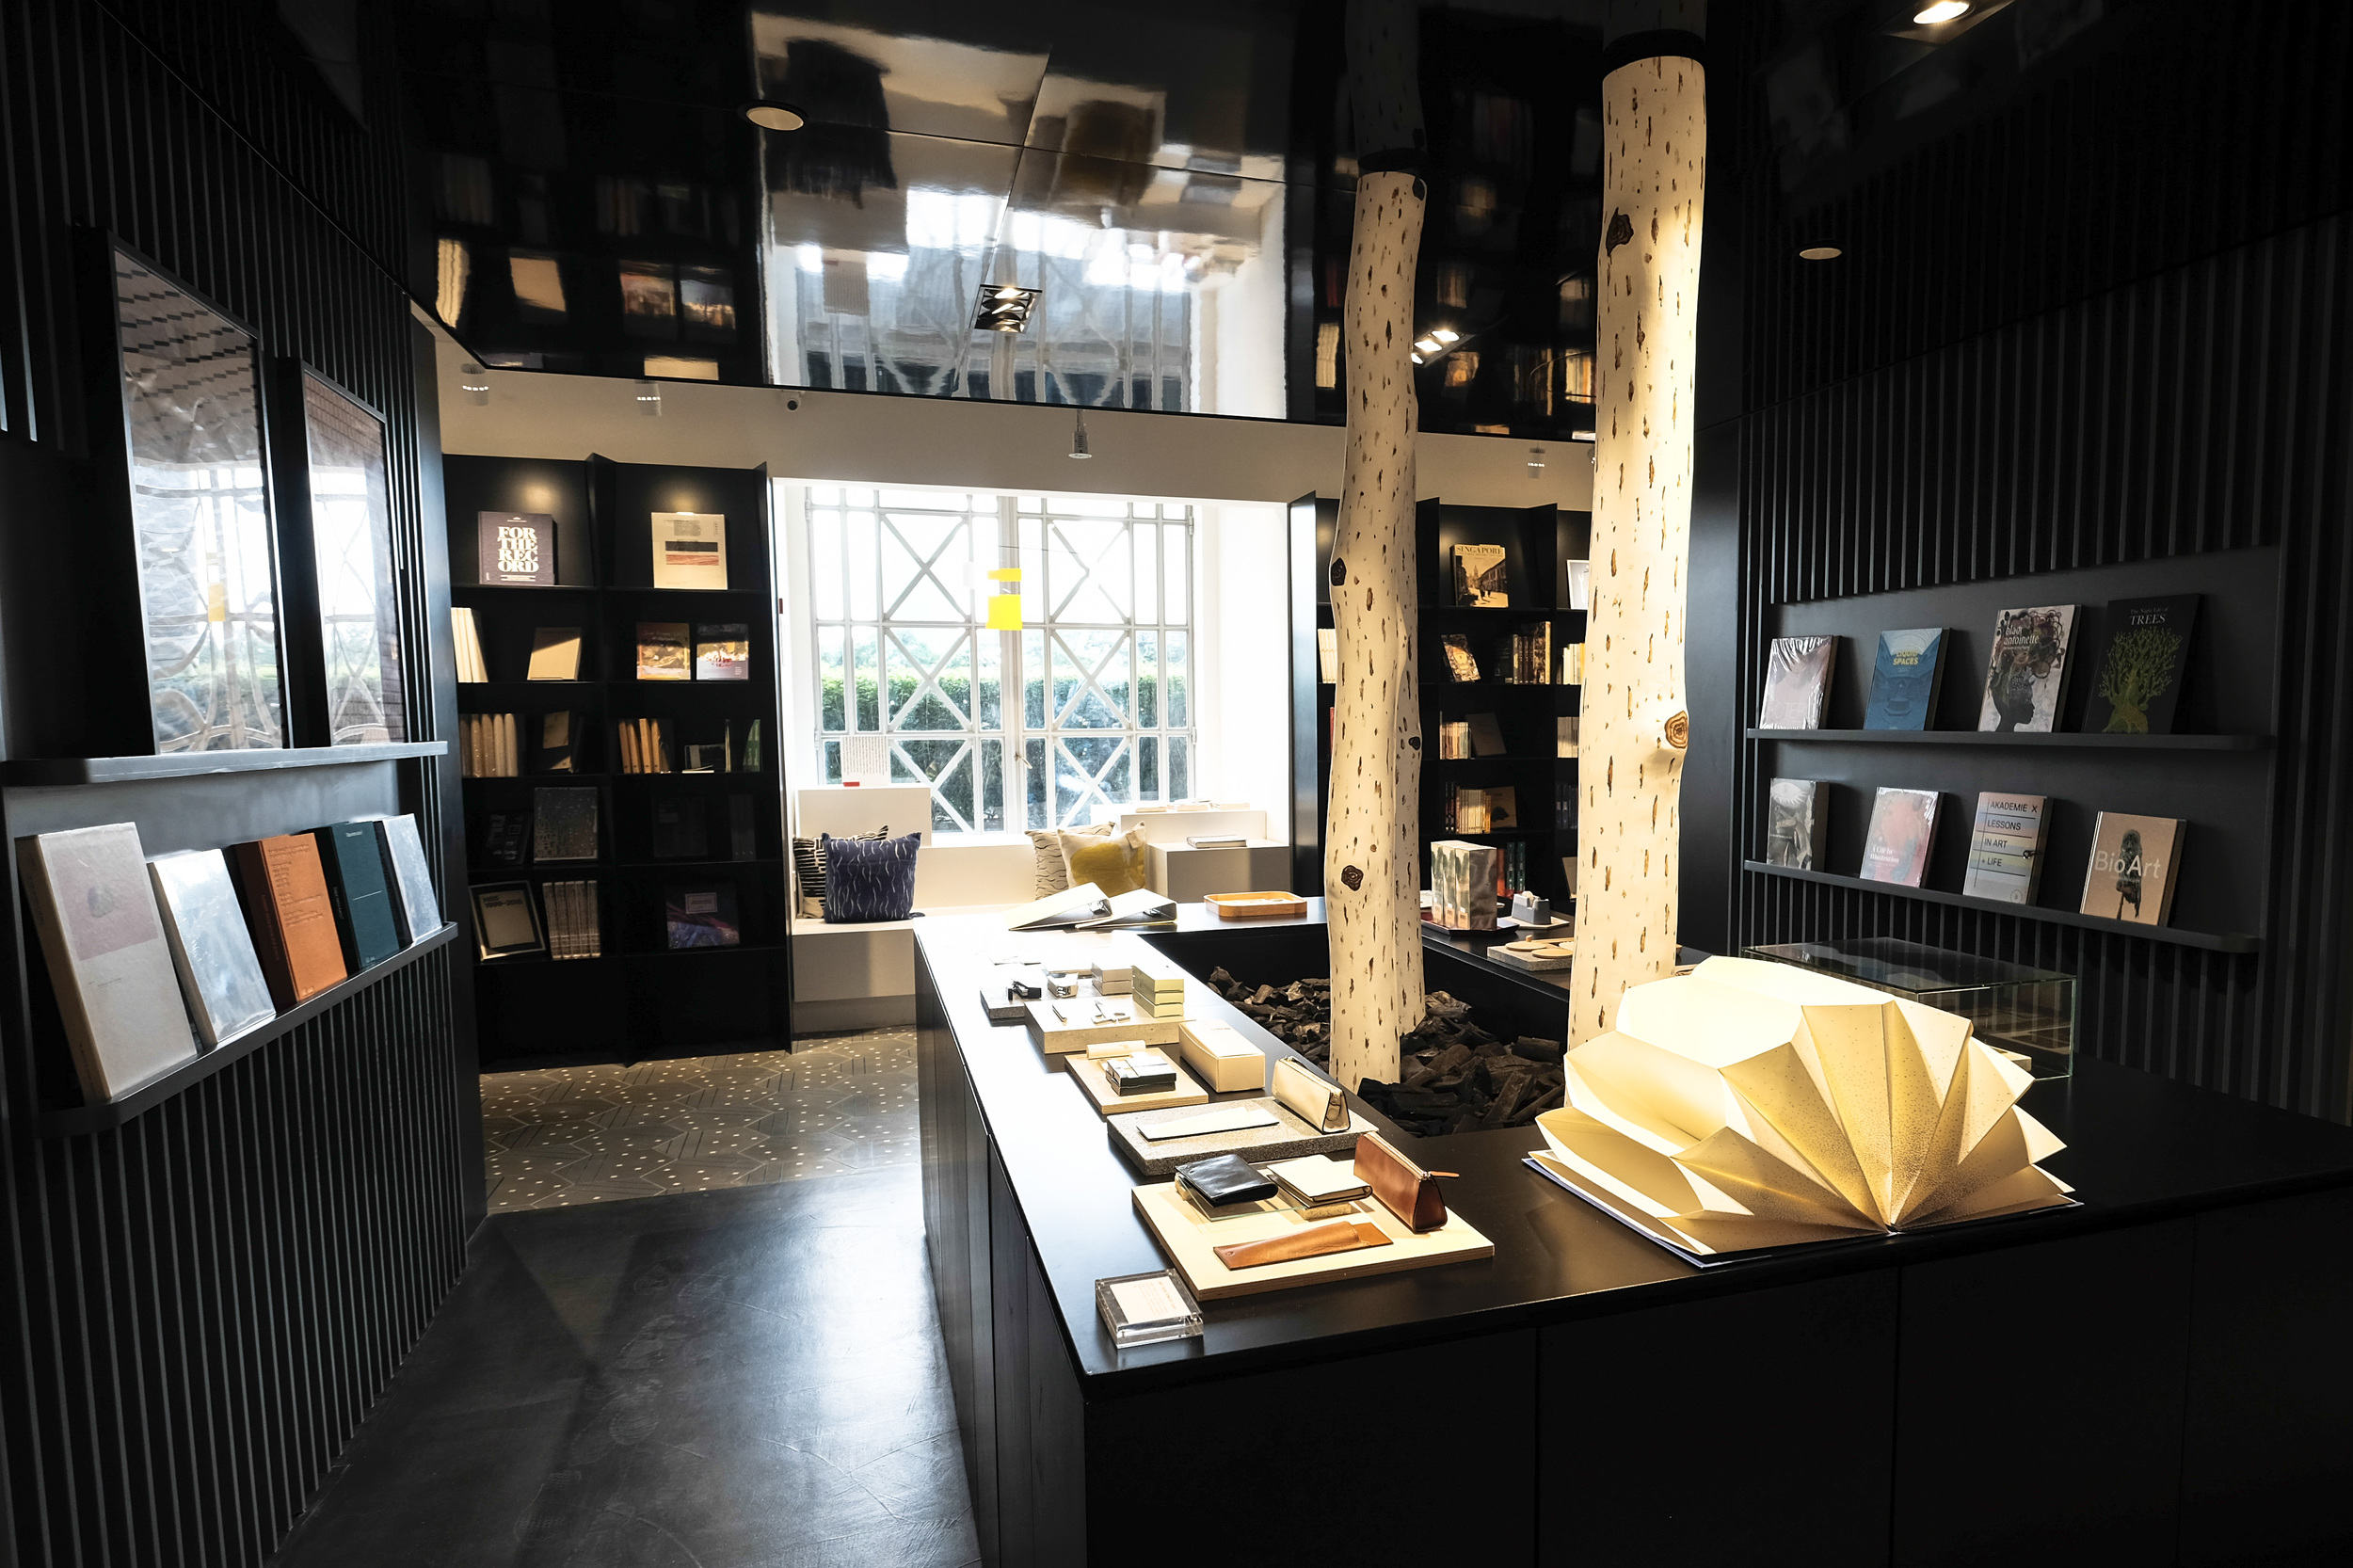 The gallery shop is a few shops in one, featuring mainly local brands and designers.